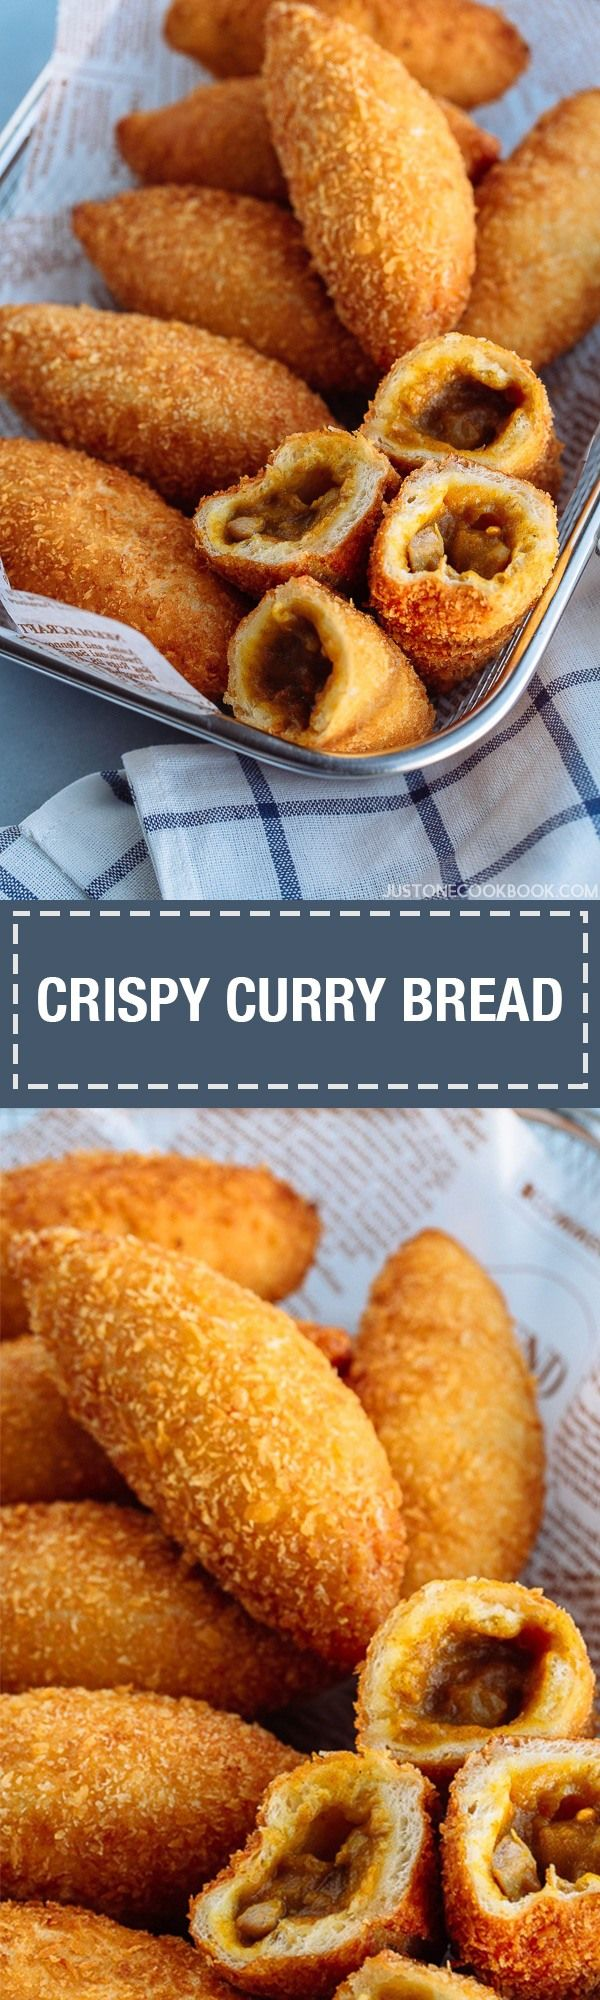 Curry Bread Kare Pan カレーパン Just One Cookbook Recipe Curry Bread Easy Japanese Recipes Japanese Curry Bun Recipe